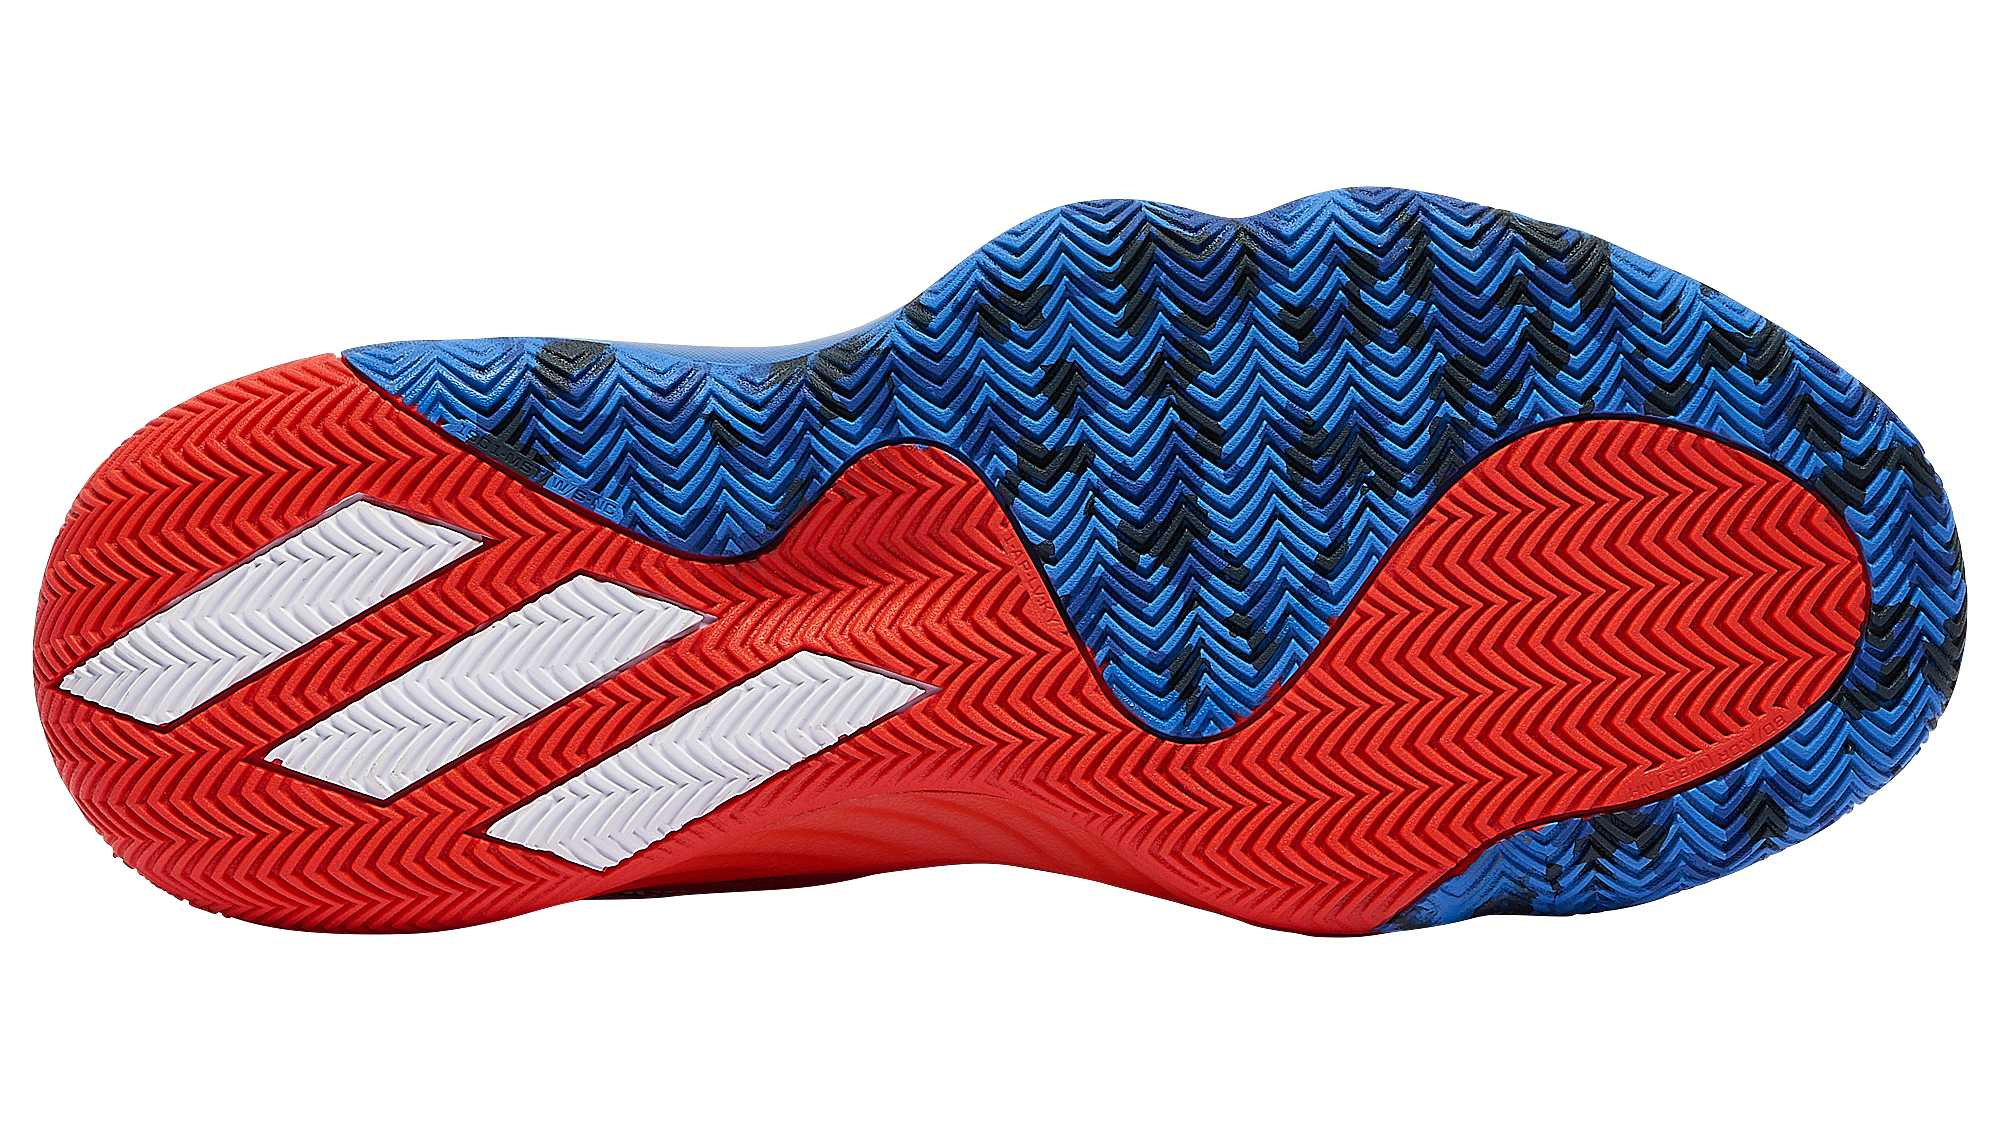 Adidas D.O.N. Issue 1 Blue Red White Release Date EF2400 Sole